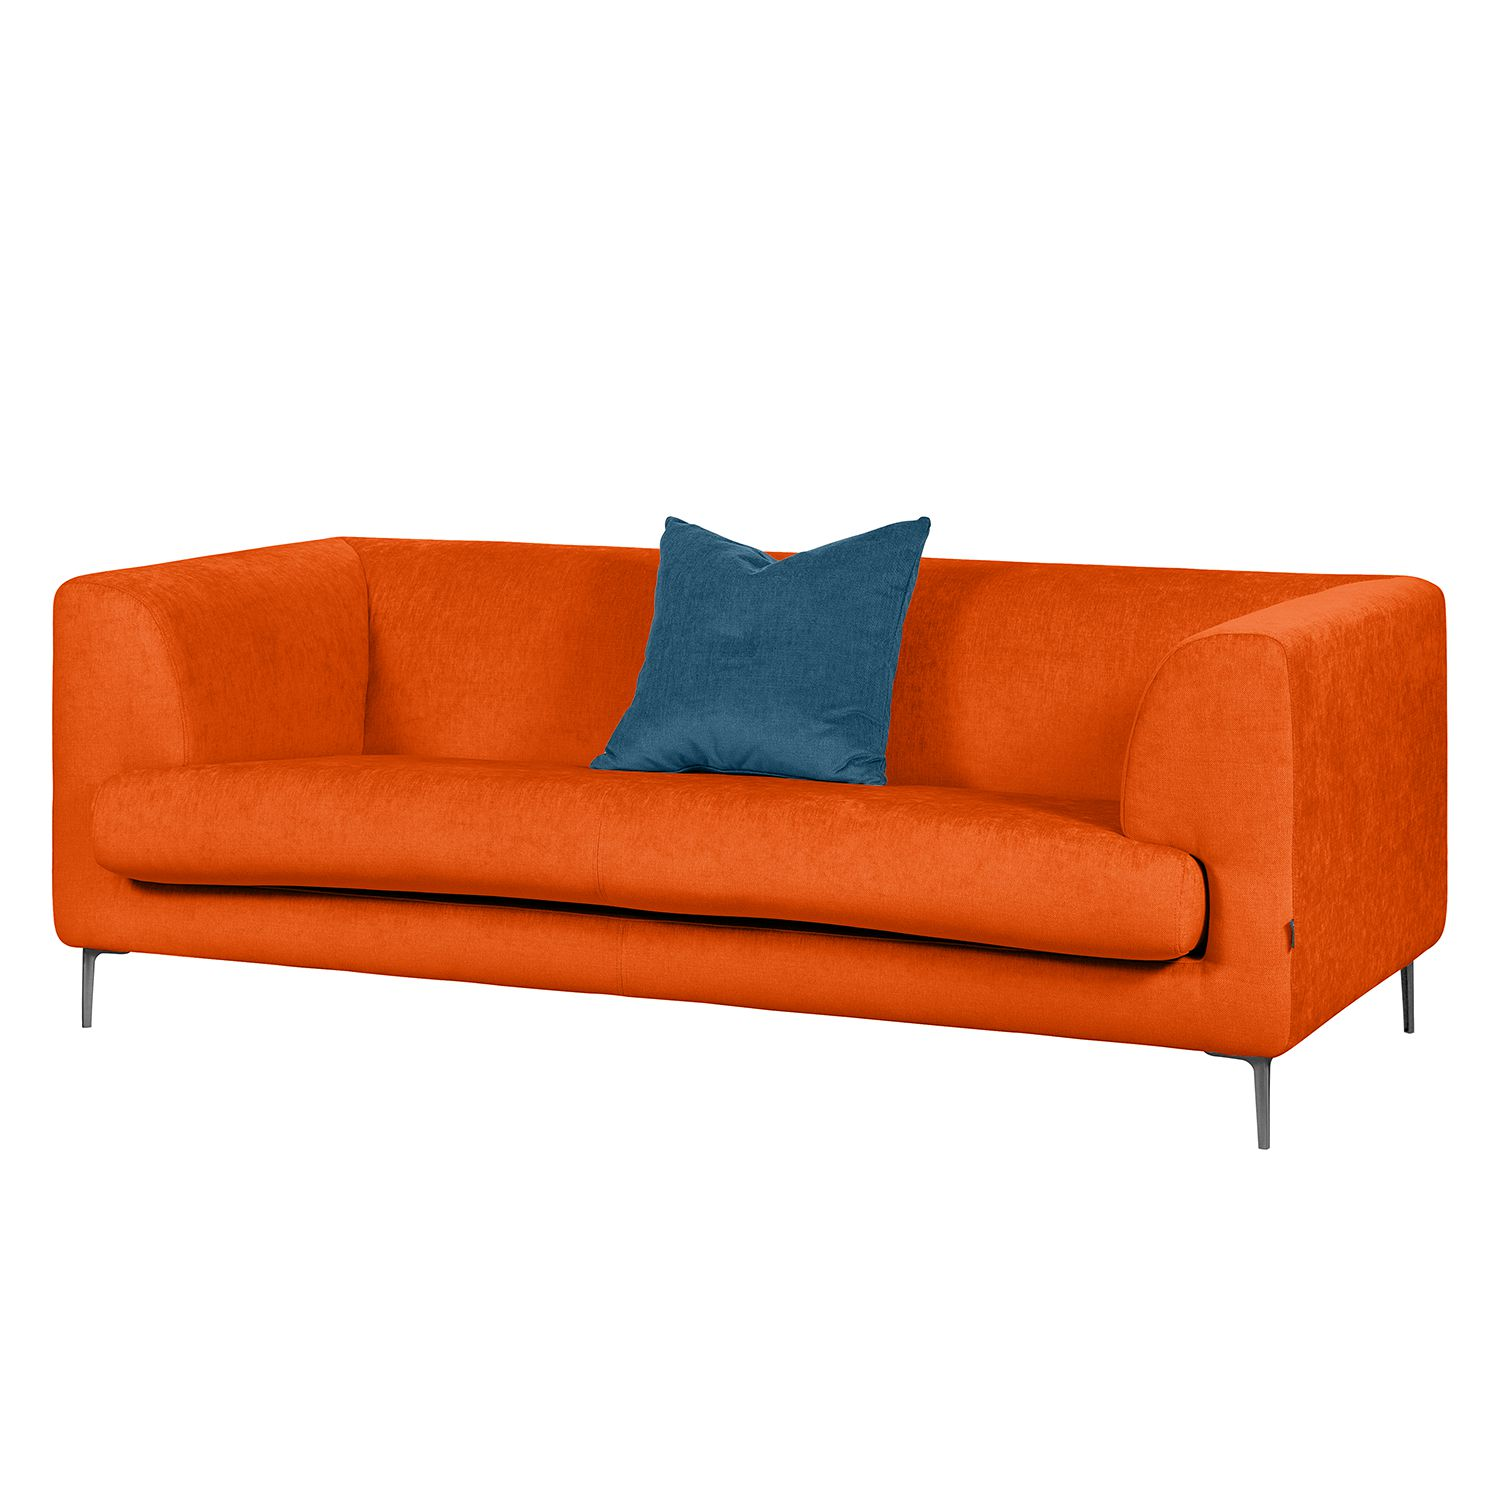 Sofa Sombret (2,5-Sitzer) - Webstoff - Orange, Says Who